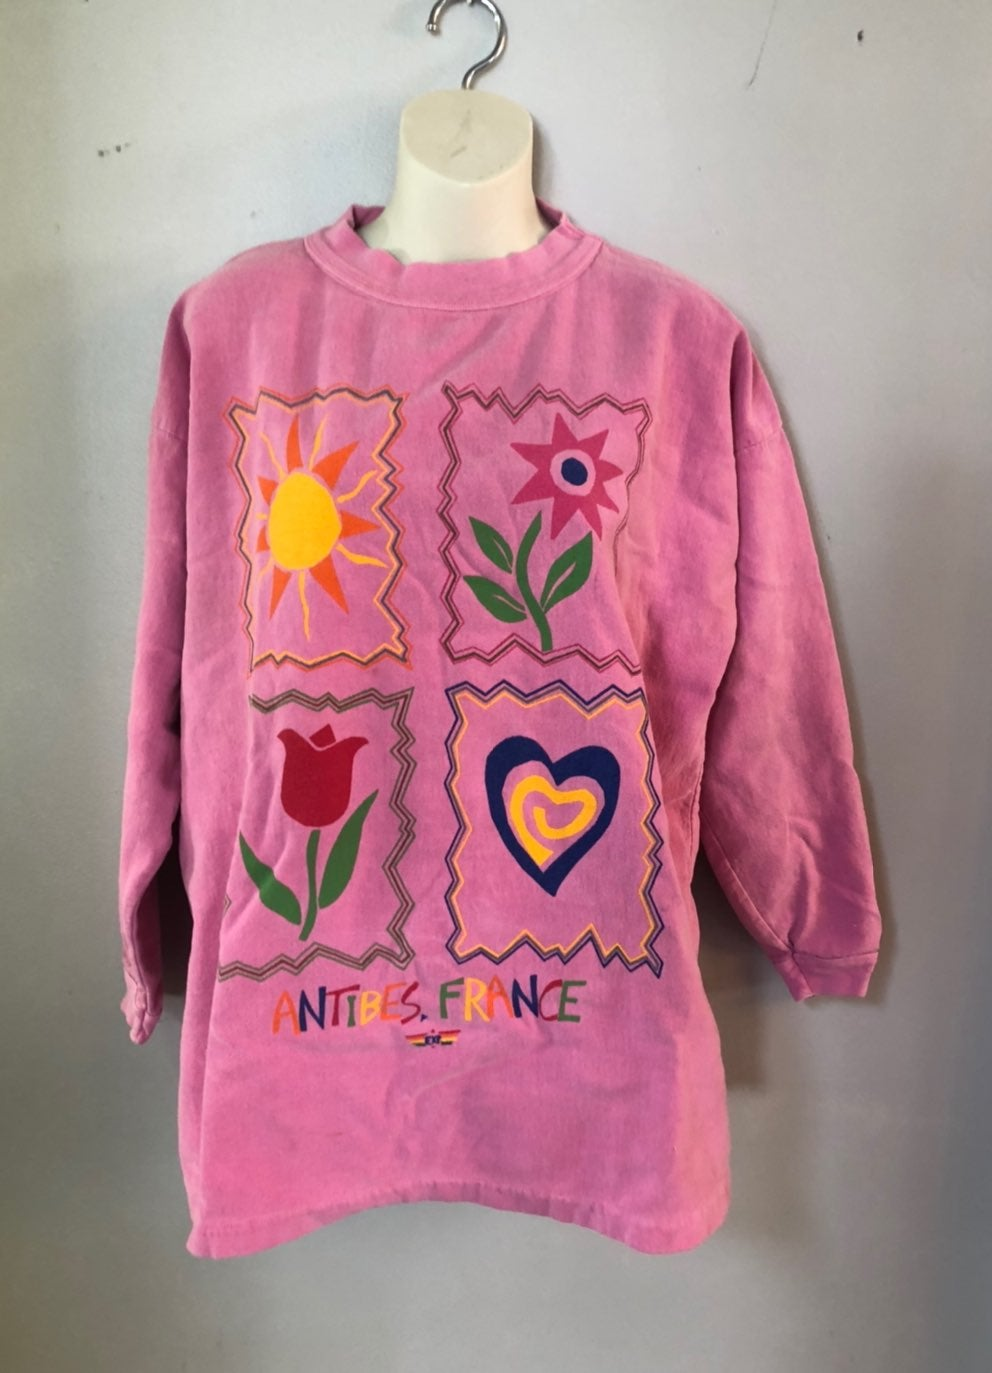 1980s express sweater antibes france